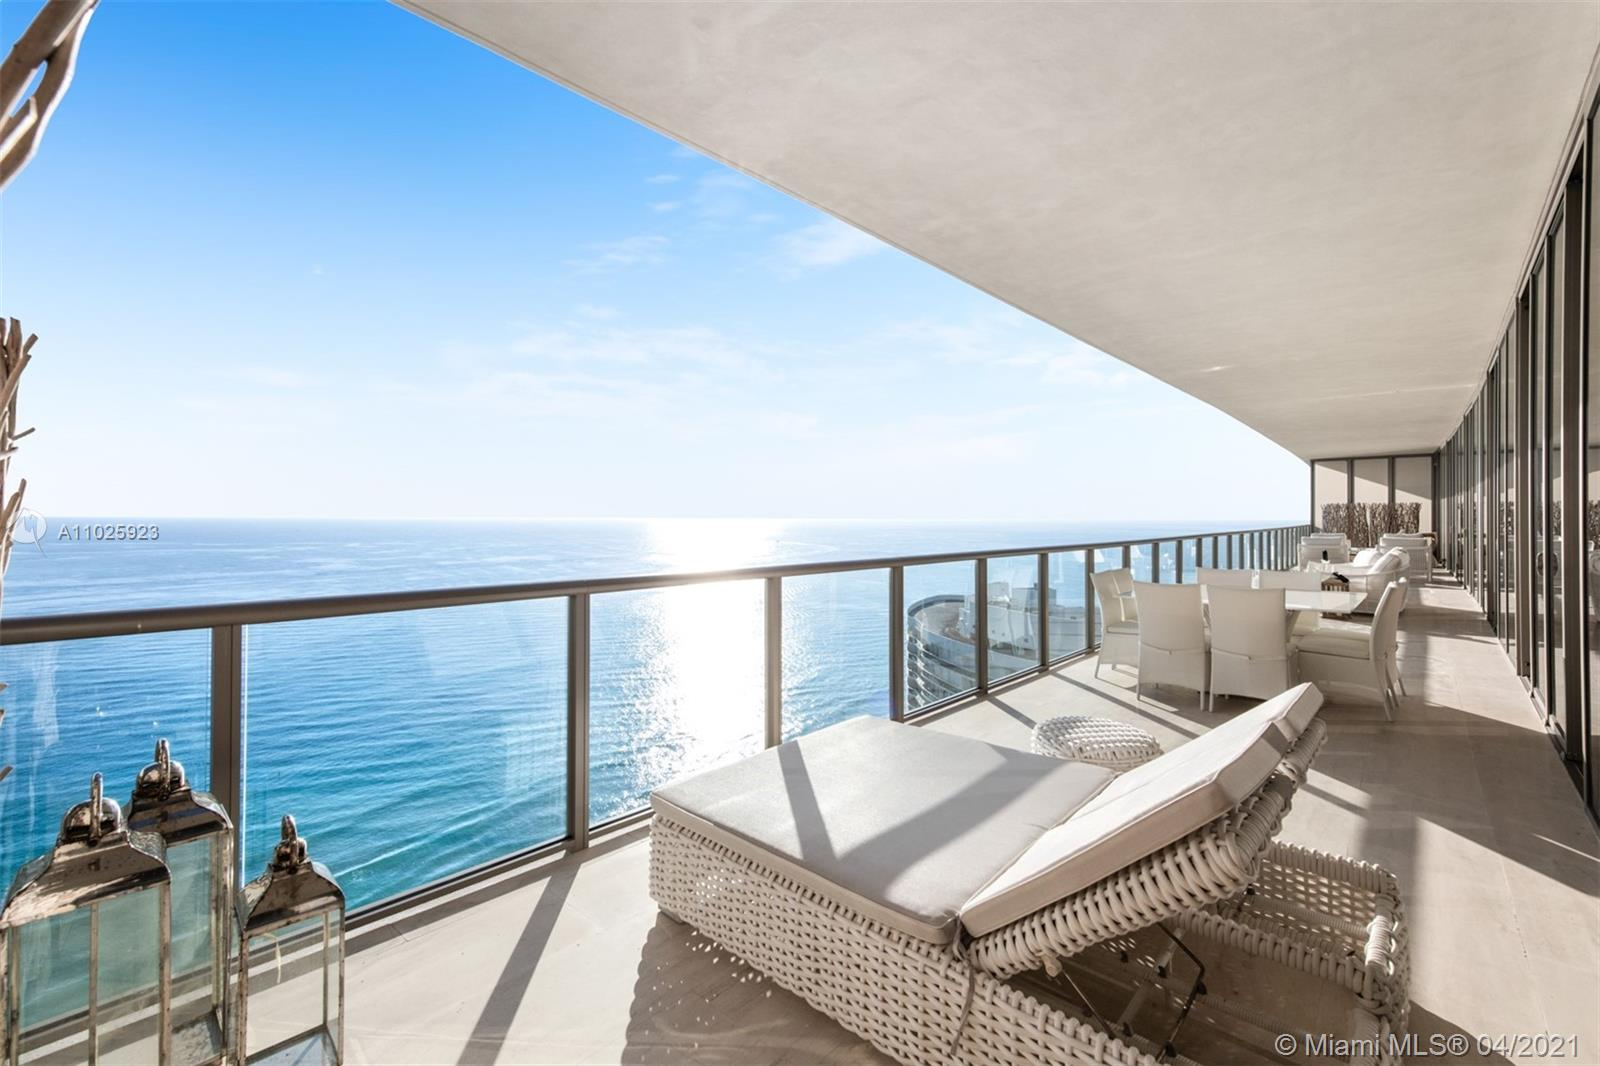 Unique opportunity to own this Penthouse Mansion on the sky at the St. Regis Bal Harbour. Two units combined; 2702 & 2703, doubling the sq ft in the tax roll see broker remarks. Located directly on the ocean with breathtaking views of the Atlantic and across from the renowned Bal Harbour Shops. This penthouse boasts five bedroom suites with two master bedrooms, custom finishes and furnishings and nearly 100 ft of continuous balcony on the east and west sides of the unit, PH 02/03 is ideal for large families and as spectacular as the view it commands. Live above it all!